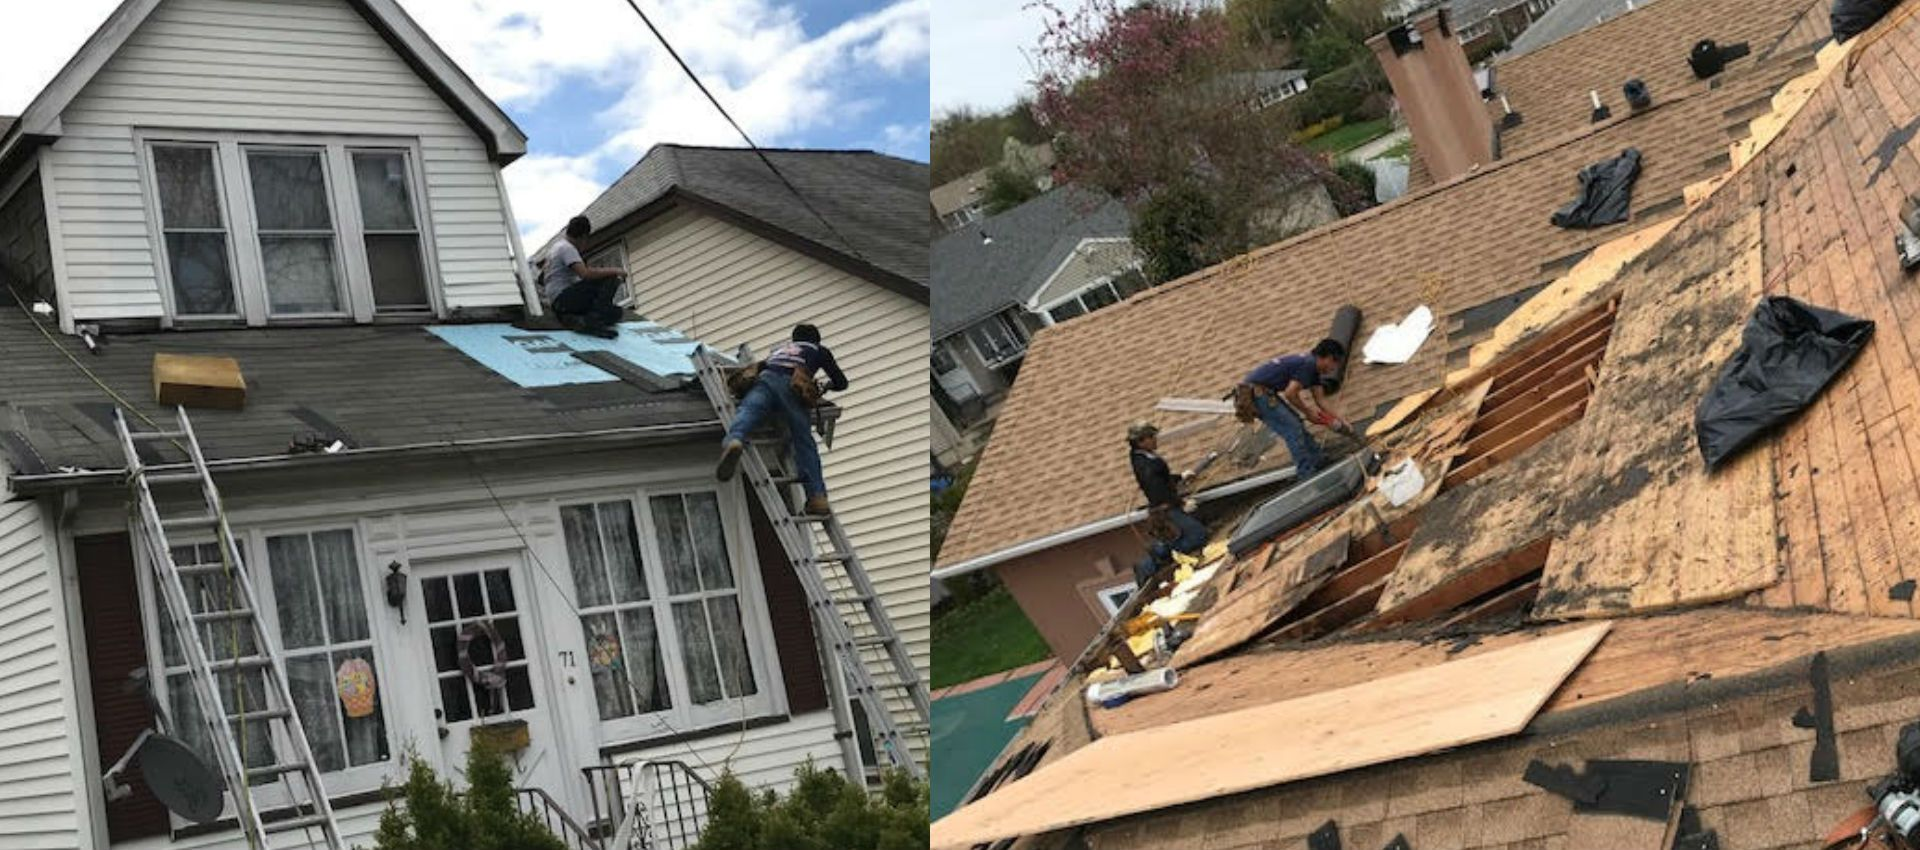 Roofing Contractors Near Me Local Roof Leak Repair Nj Skylight Repair Flat Roof Leak Repair